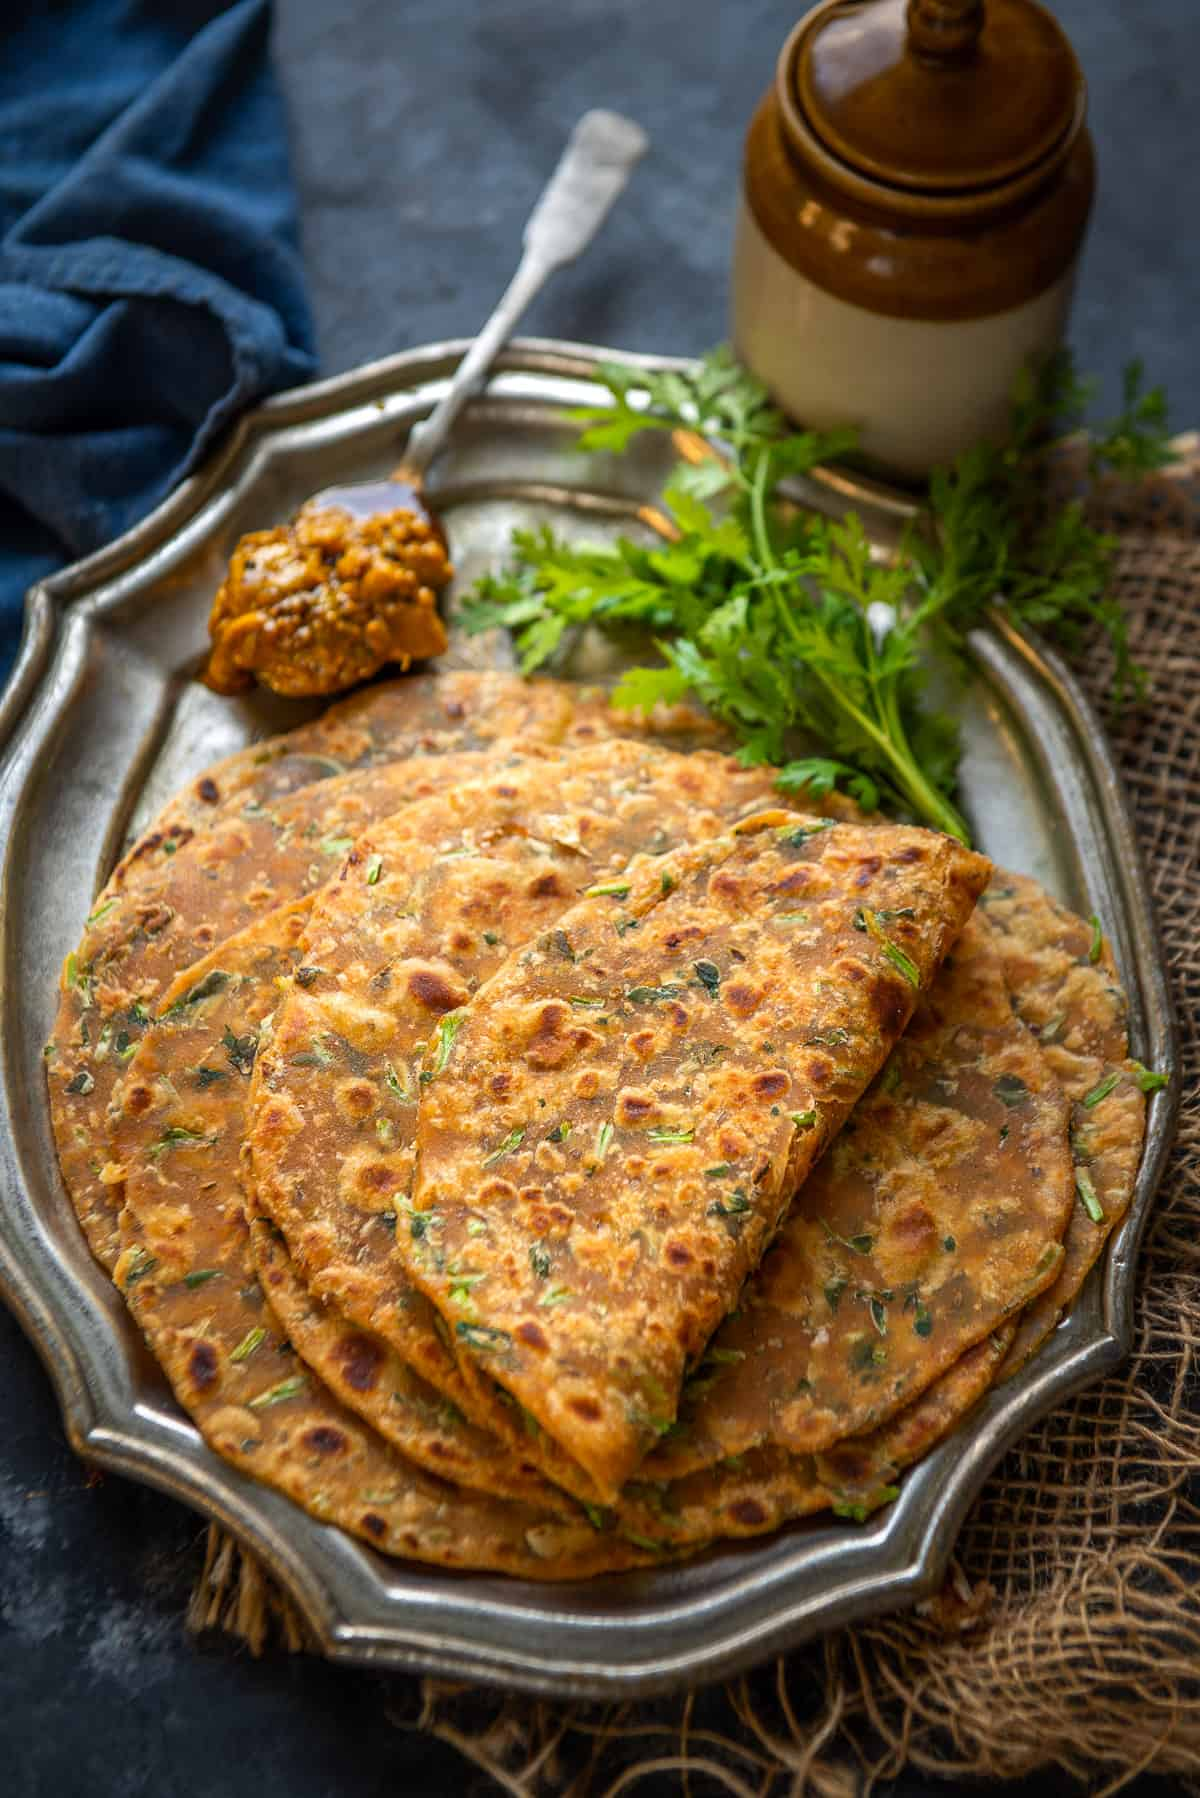 methi Paratha served on a plate with pickle.